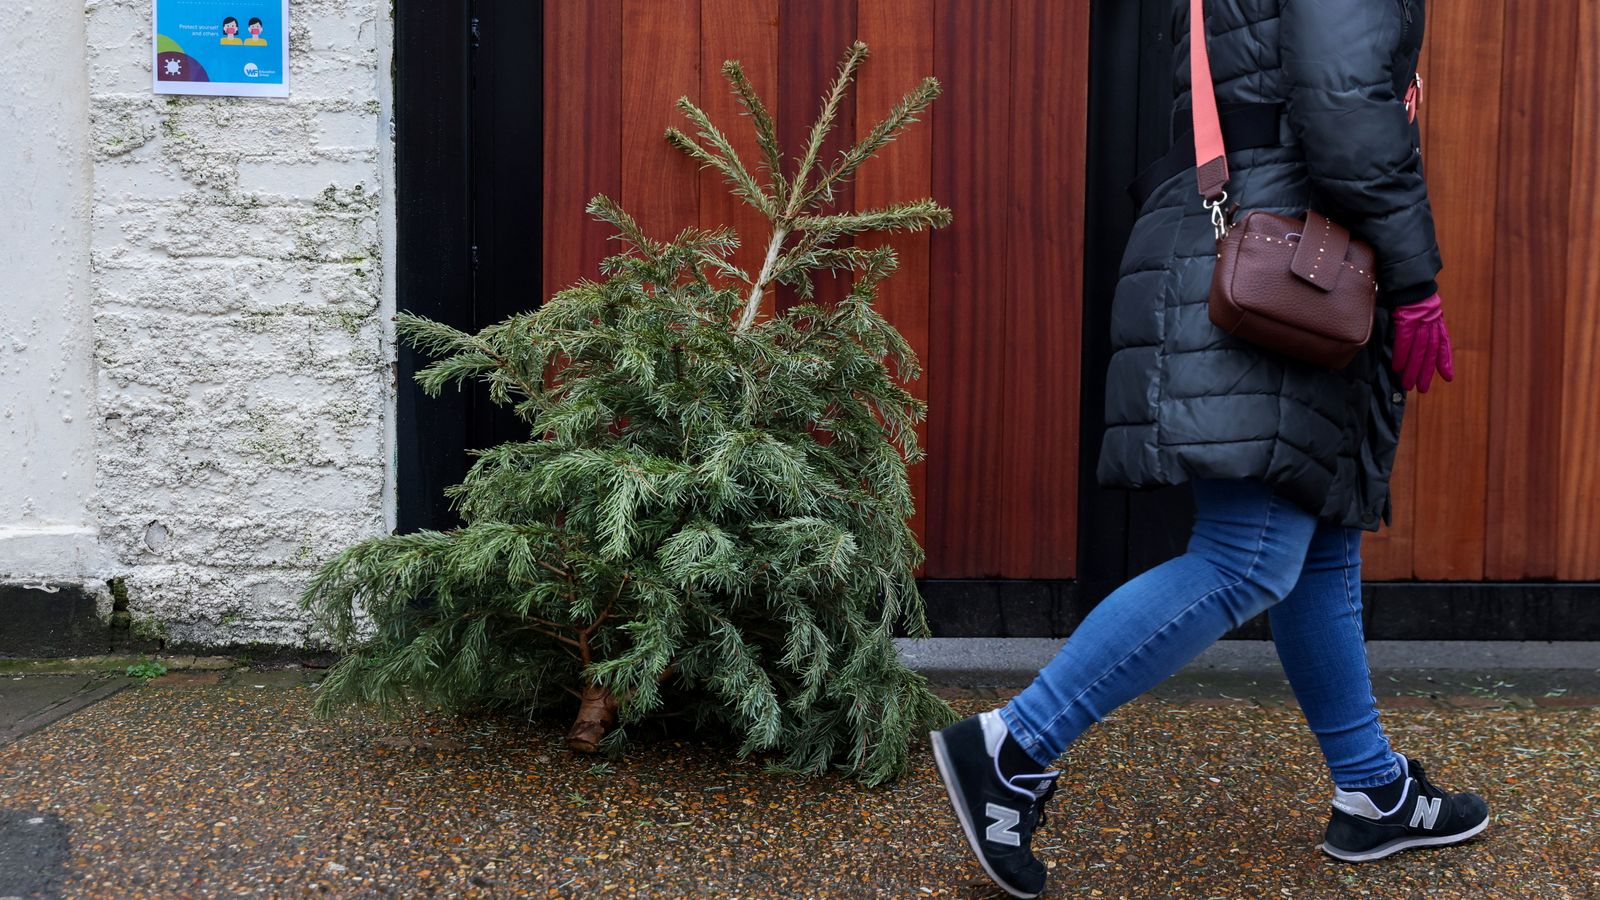 Christmas tree shortage and price warning as sellers hit by labour and supply chain issues - Sky News